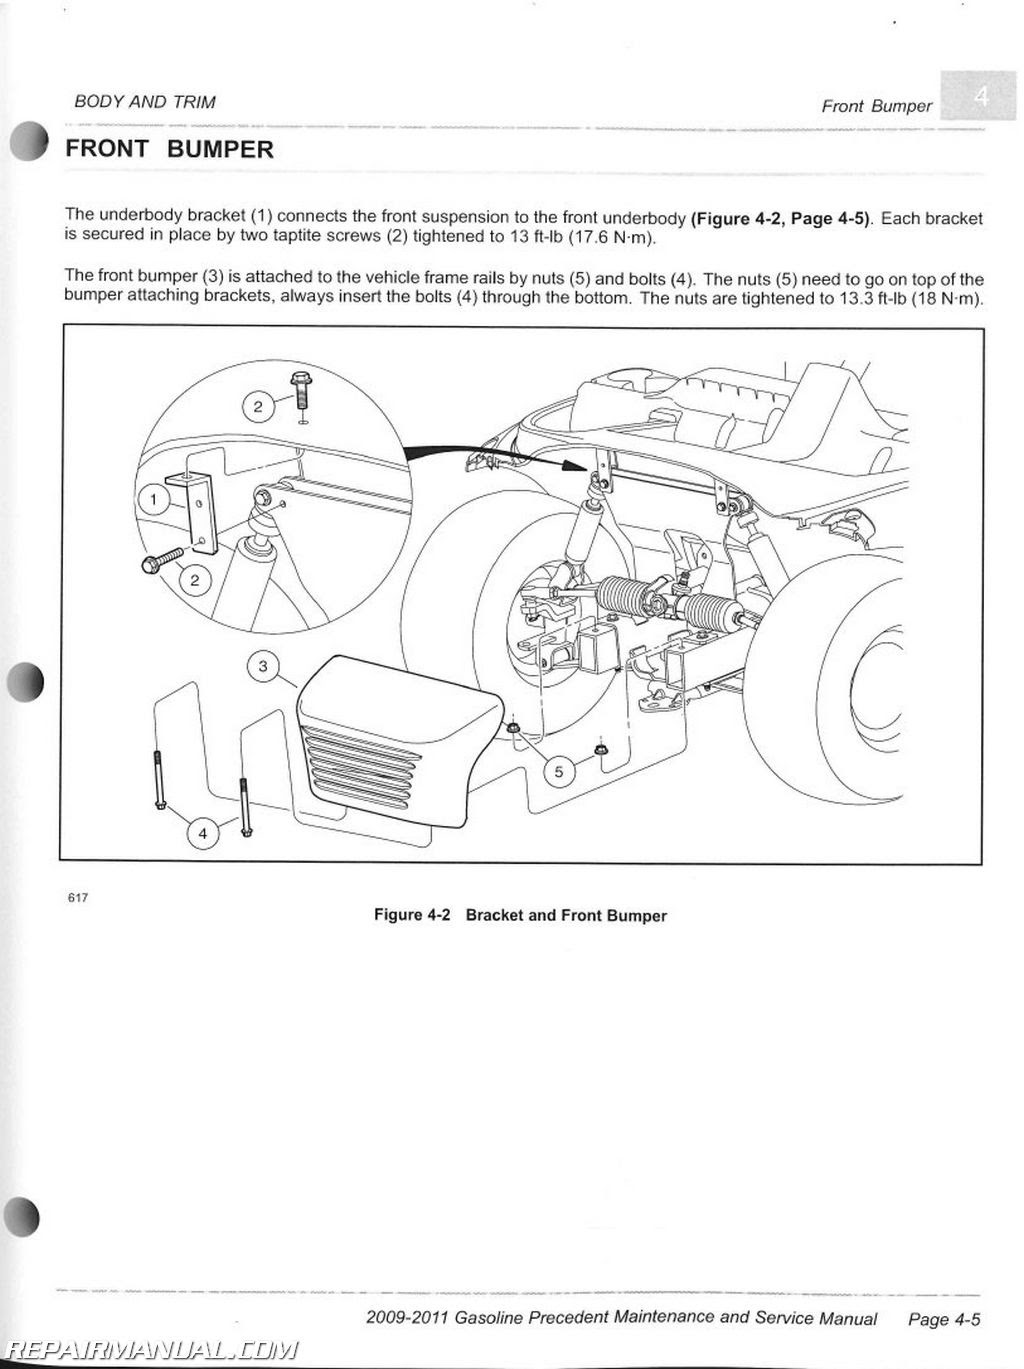 Wiring Diagram: 12 Club Car Wiring Diagram Gas